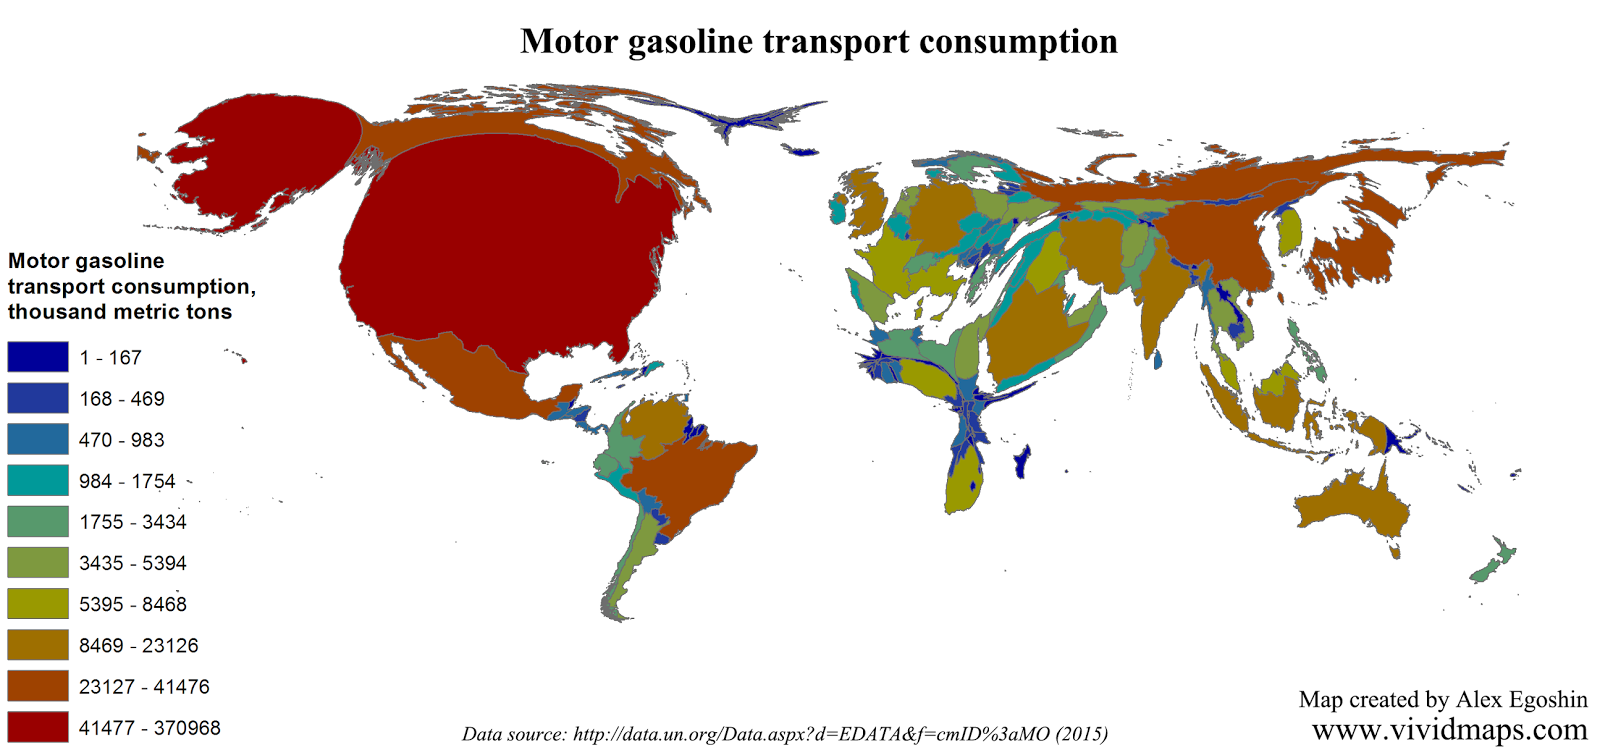 Motor gasoline transport consumption